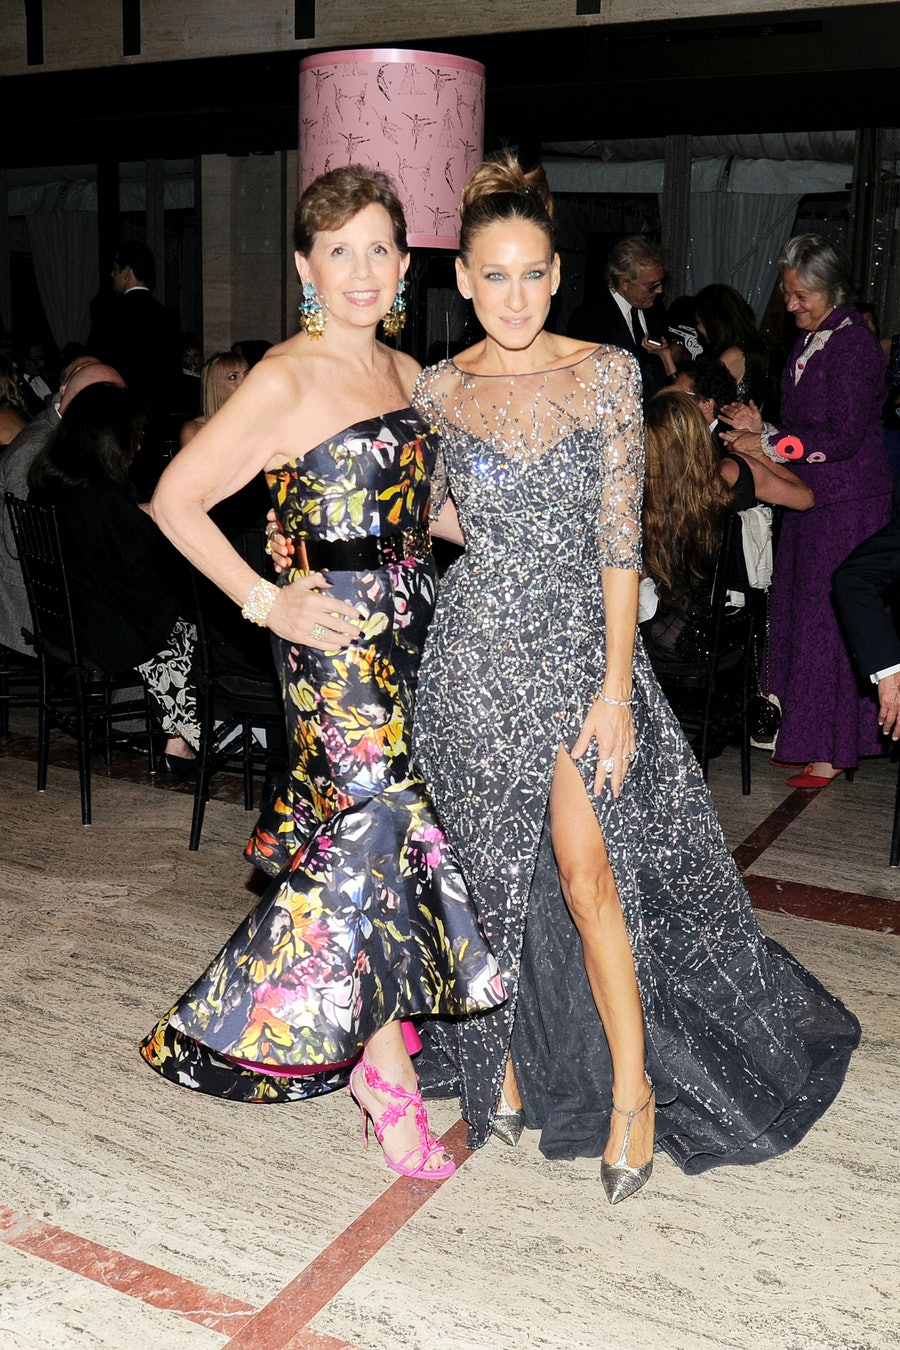 Adrienne Arsht and Sarah Jessica Parker